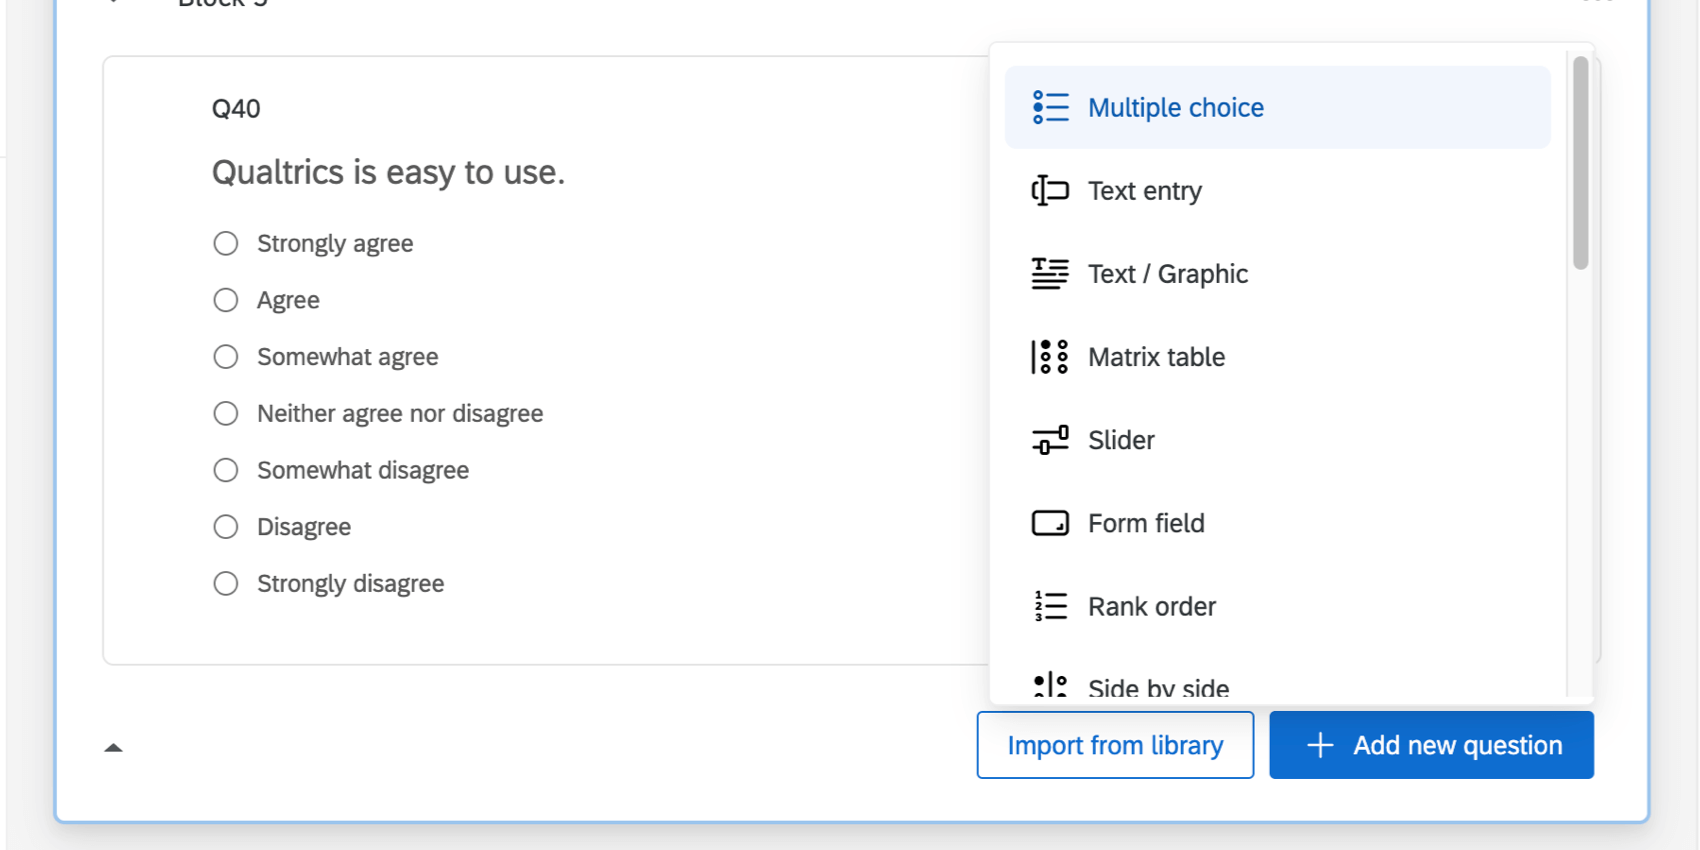 Dropdown arrow next to Create a New Question reveals a full list of question types